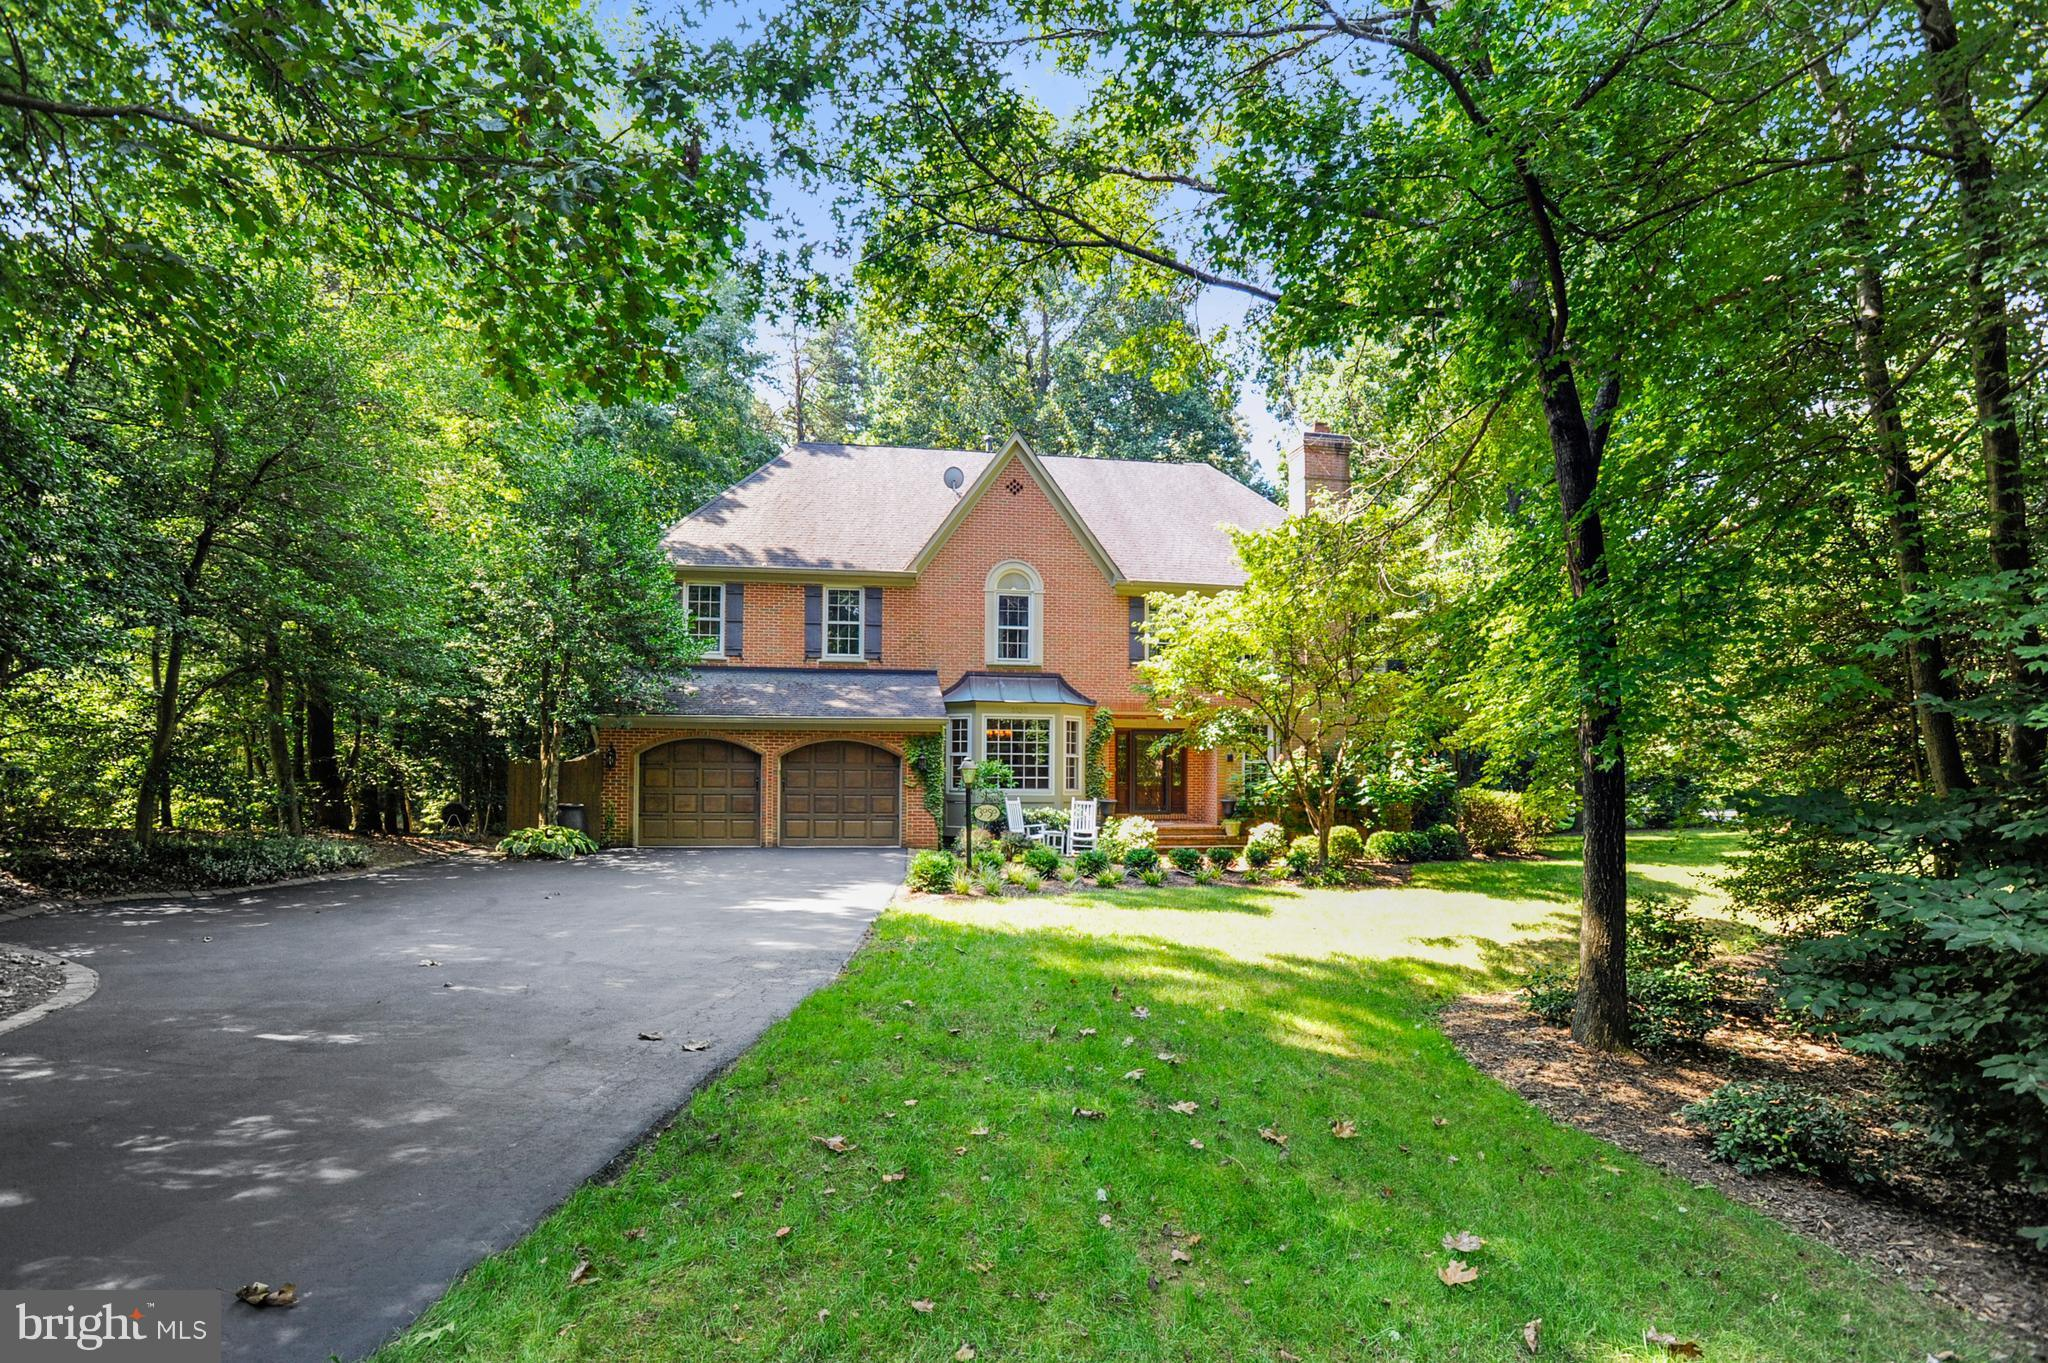 Elegant & spacious Wexford built home (over 5000 finished sq ft) on private wooded lot * Huge eat in gourmet kitchen w/ SS appliances, 2 sinks, 2 dishwashers, walk in pantry * 2-story family rm w/ stone fireplace, private office, & sunroom. UL- Master suite  dressing room, 2 walk in closets, & renovated bath * 3 additional large bdrms & 2 adtnl baths * LL walk out, rec room, work shop & full bath.